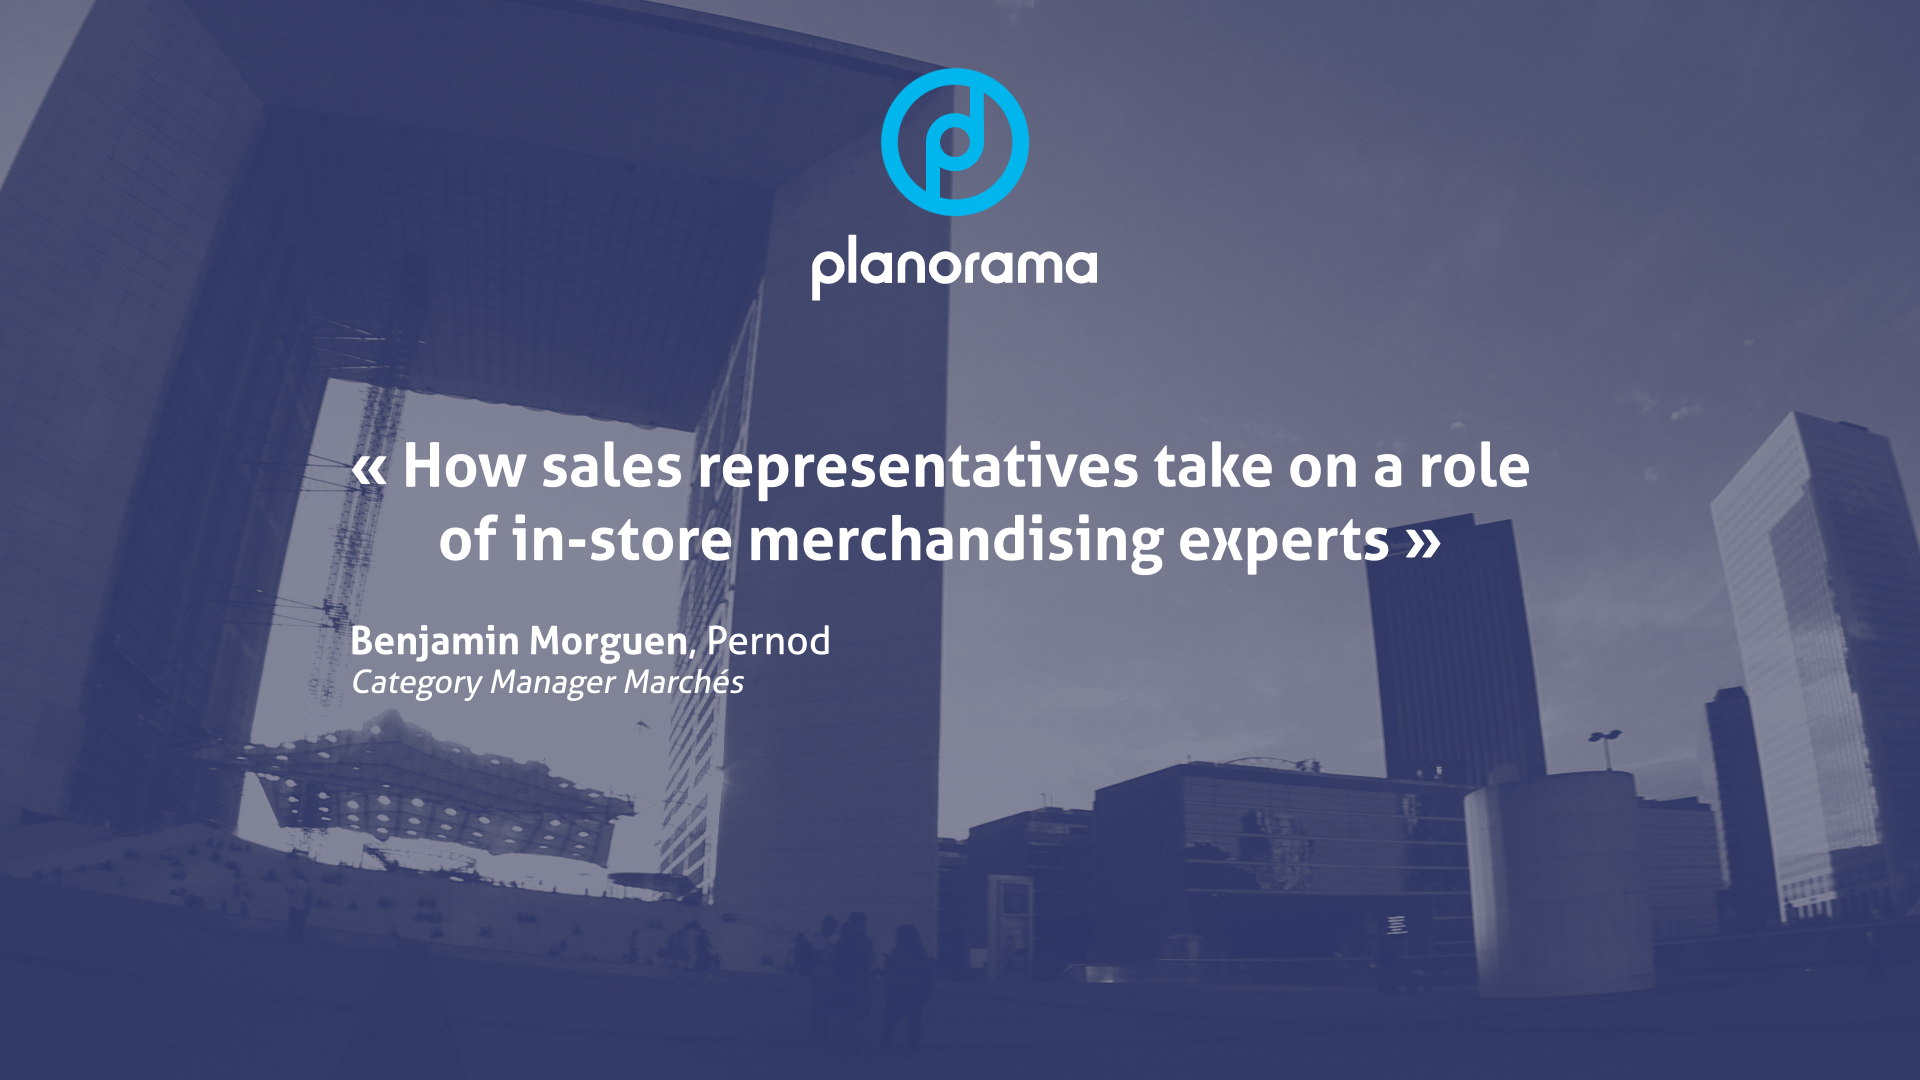 How sales reps take on a role of in-store merchandising experts